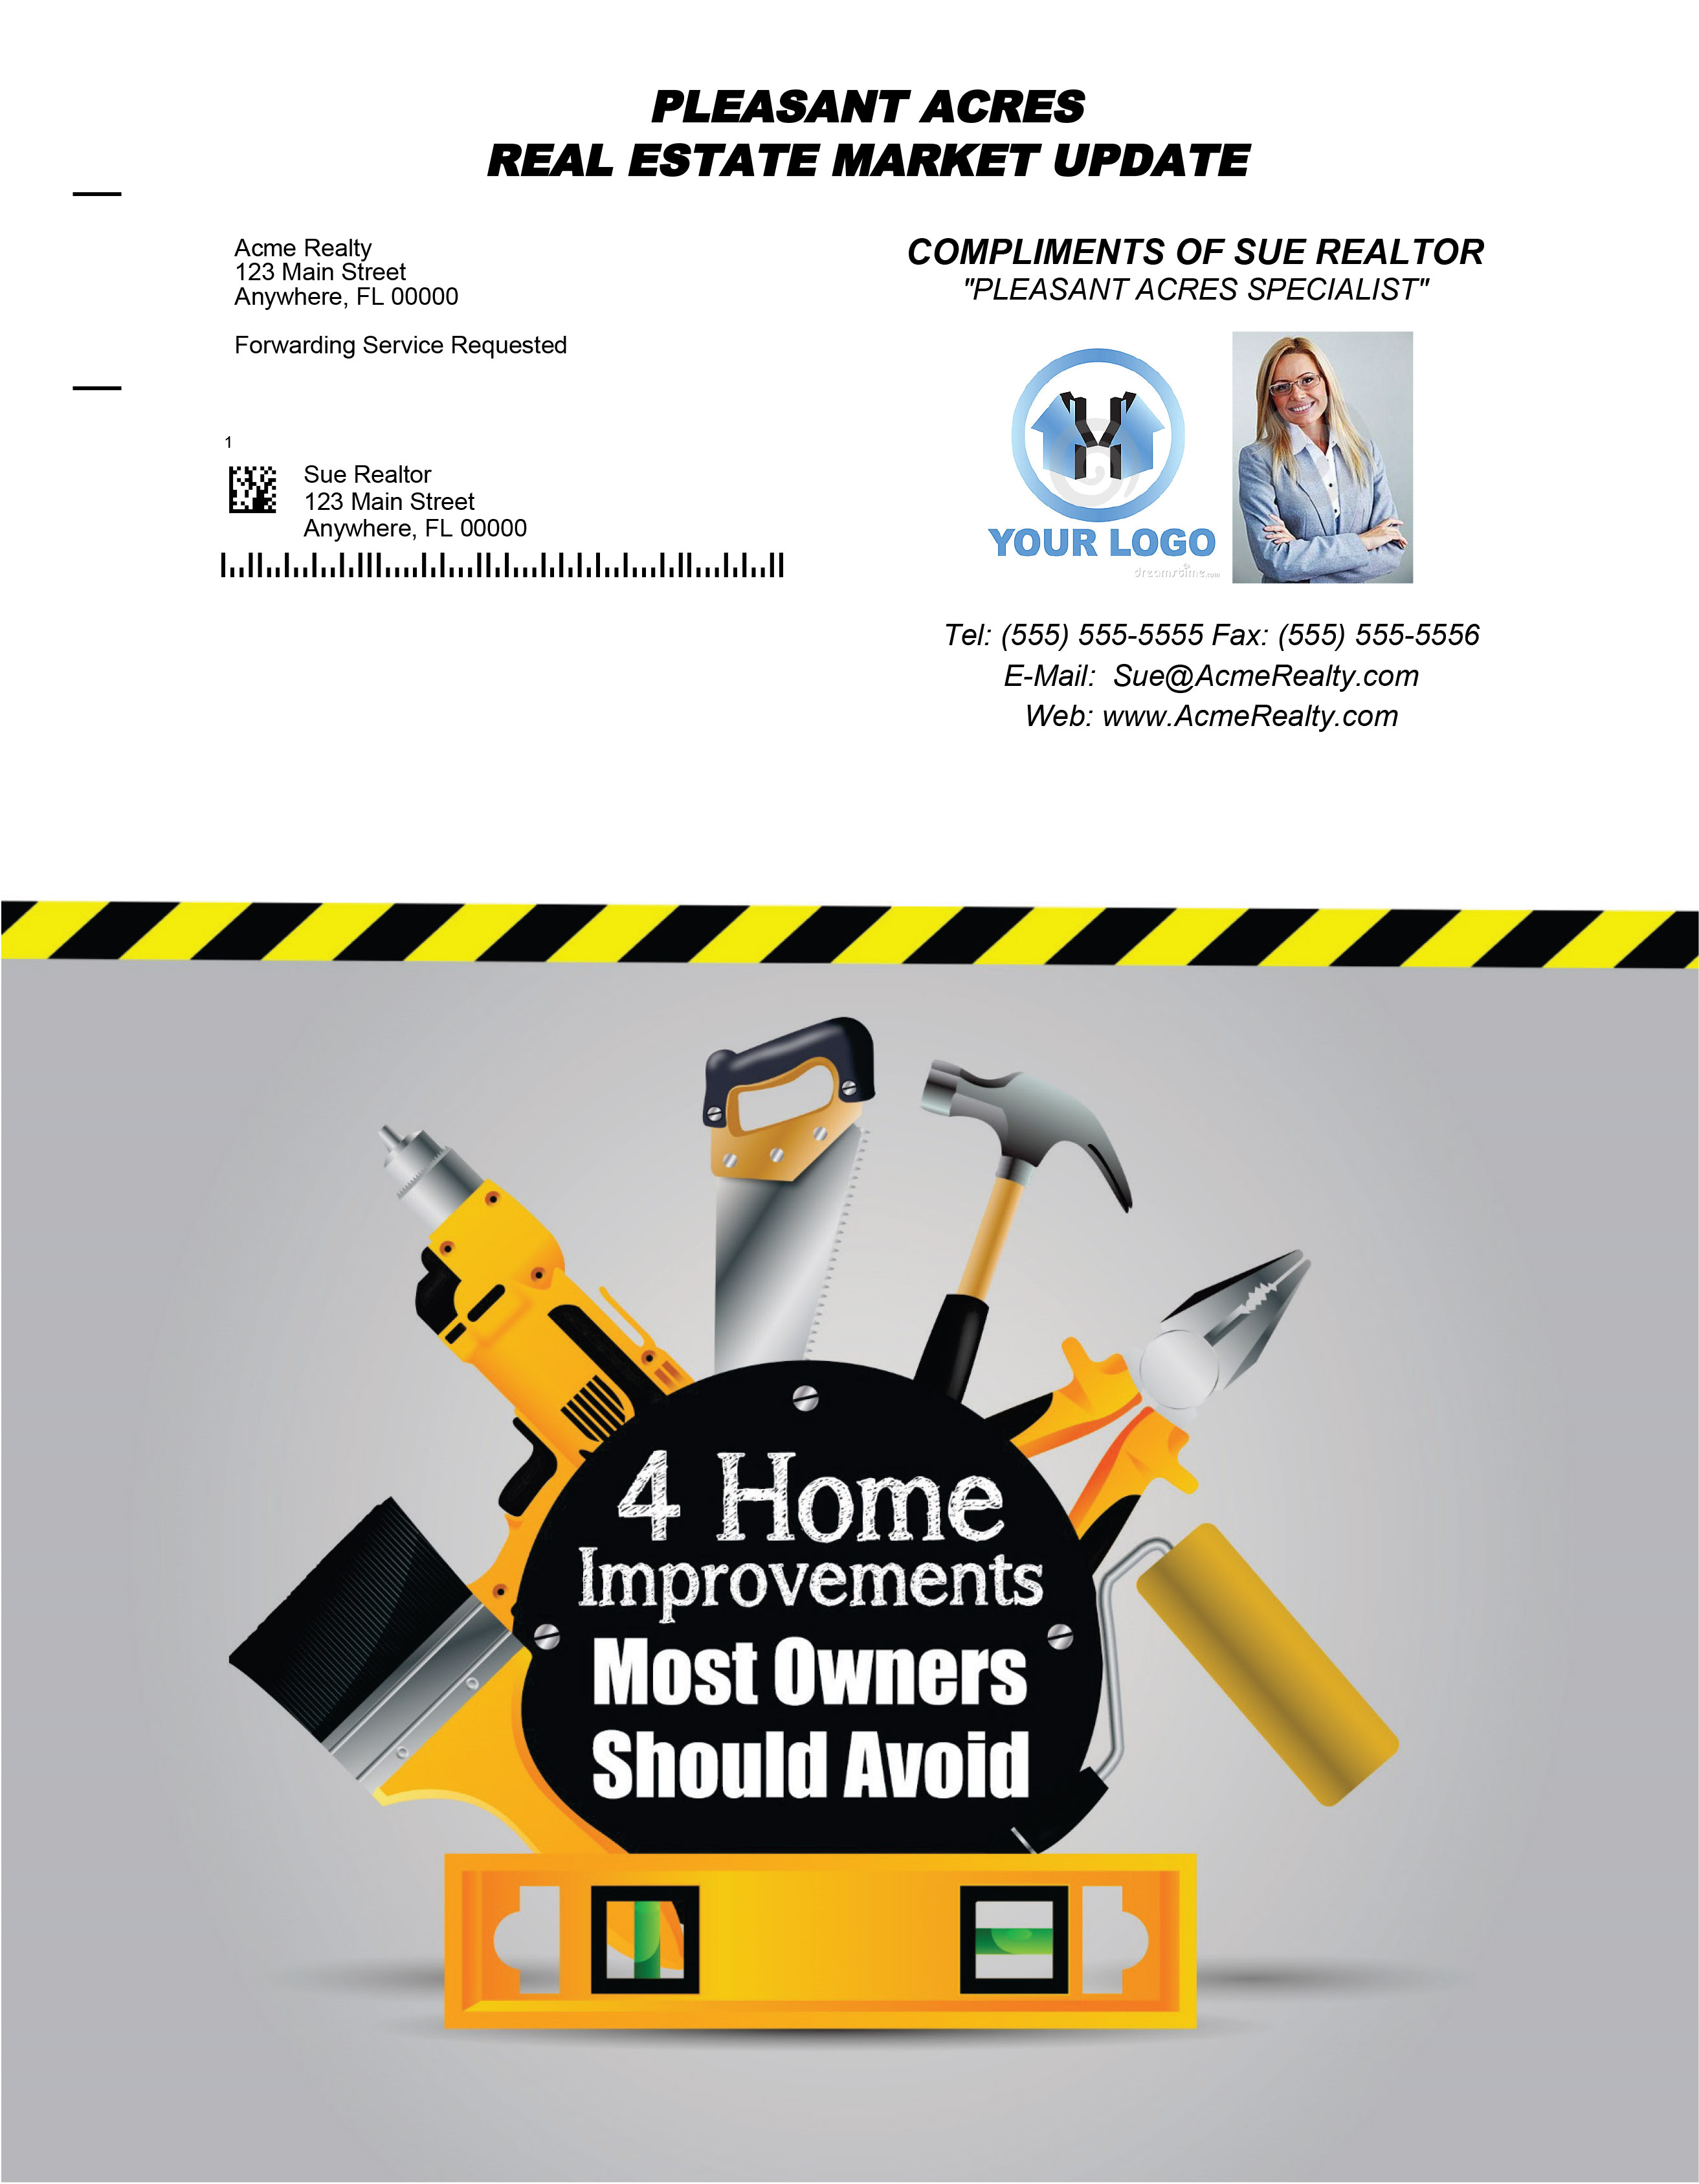 4 Home Improvements to Avoid